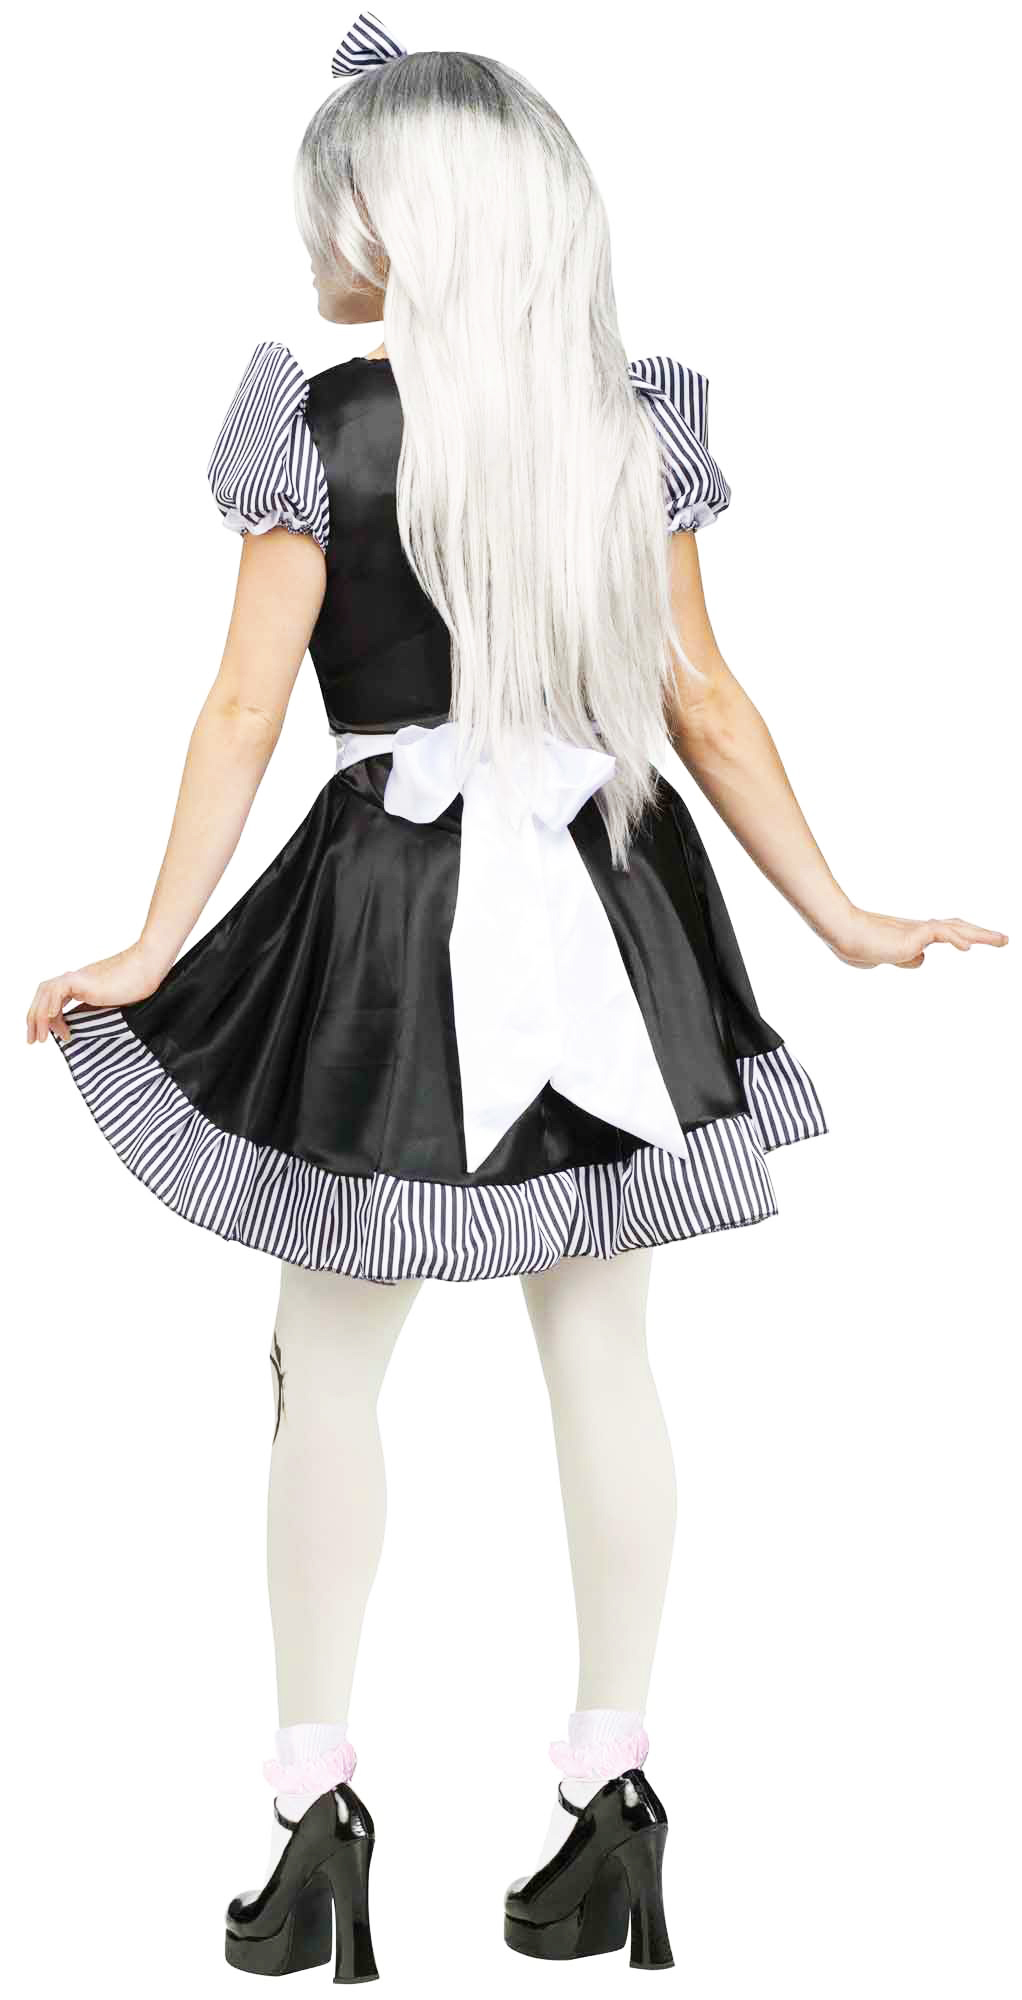 63d44e4310b Broken Doll Adult Halloween Costume - Walmart.com